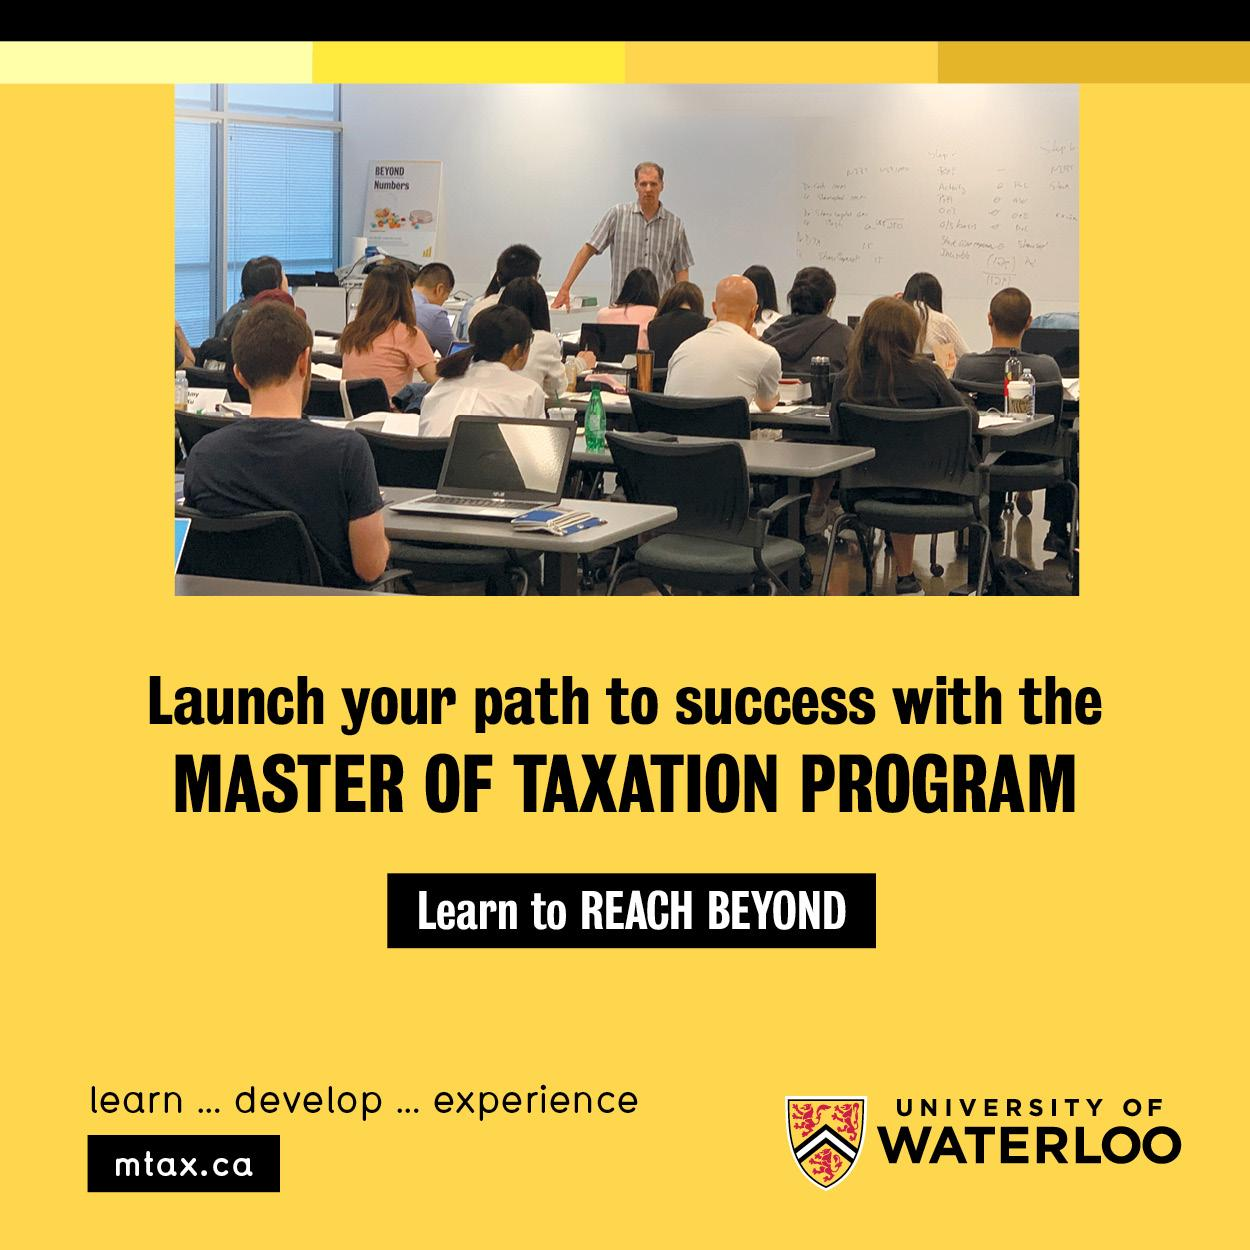 "Advert for the University of Waterloo's Master of Taxation program. Text below an image of students in a classroom reads: ""Launch your path to success with the Master of Taxation program. Learn to reach beyond. Learn...develop...experience."""